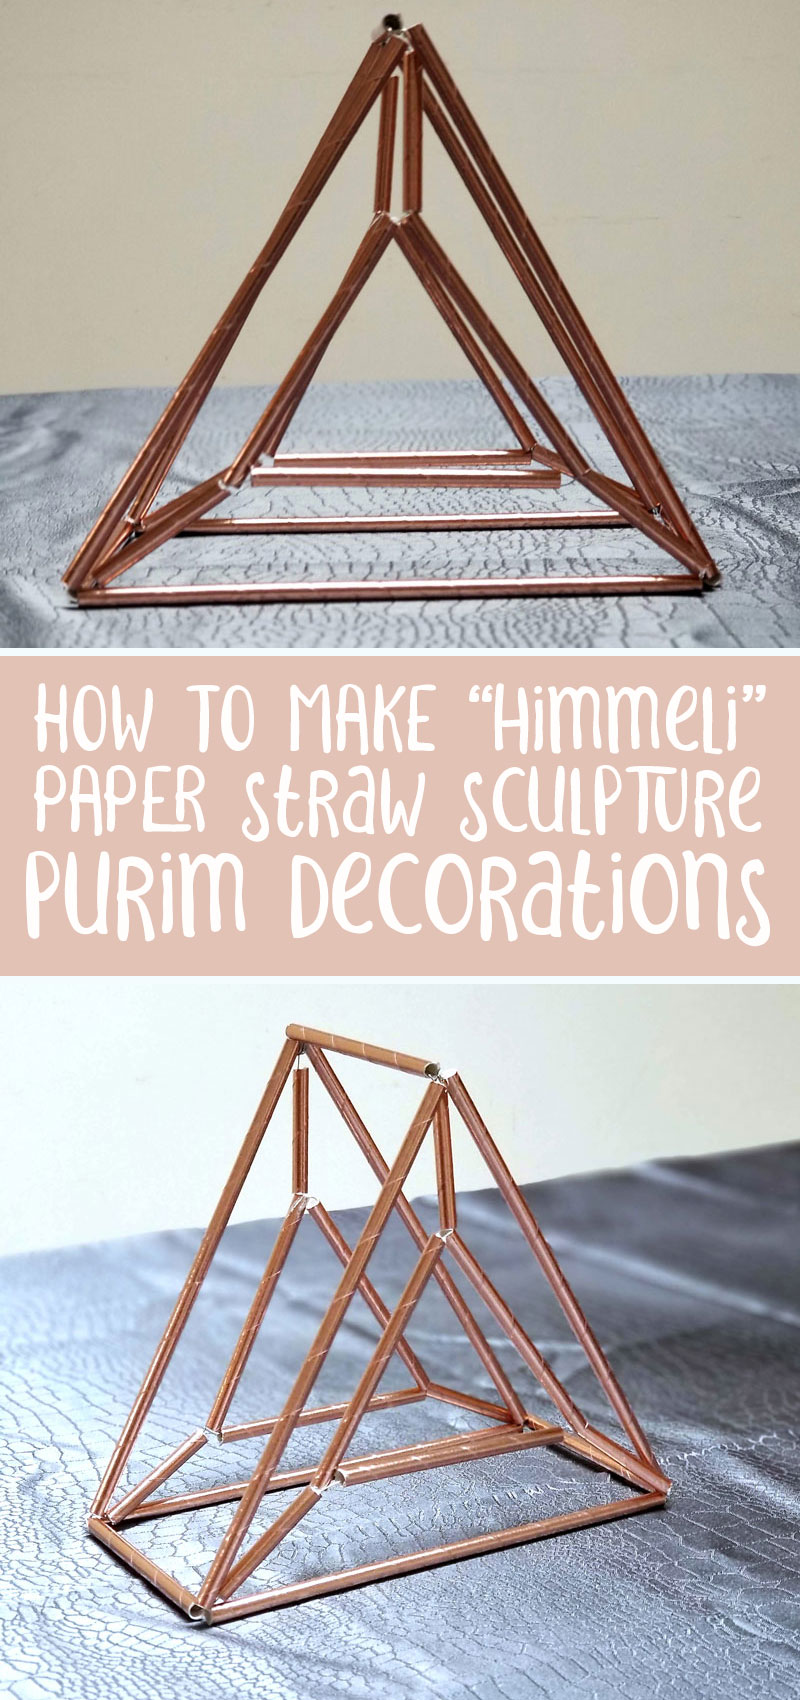 Looking for a cool Purim craft for adults? These himmeli hamantaschen crafts made from paper straws are way cool and are presented in a gorgeous Purim tablescape.